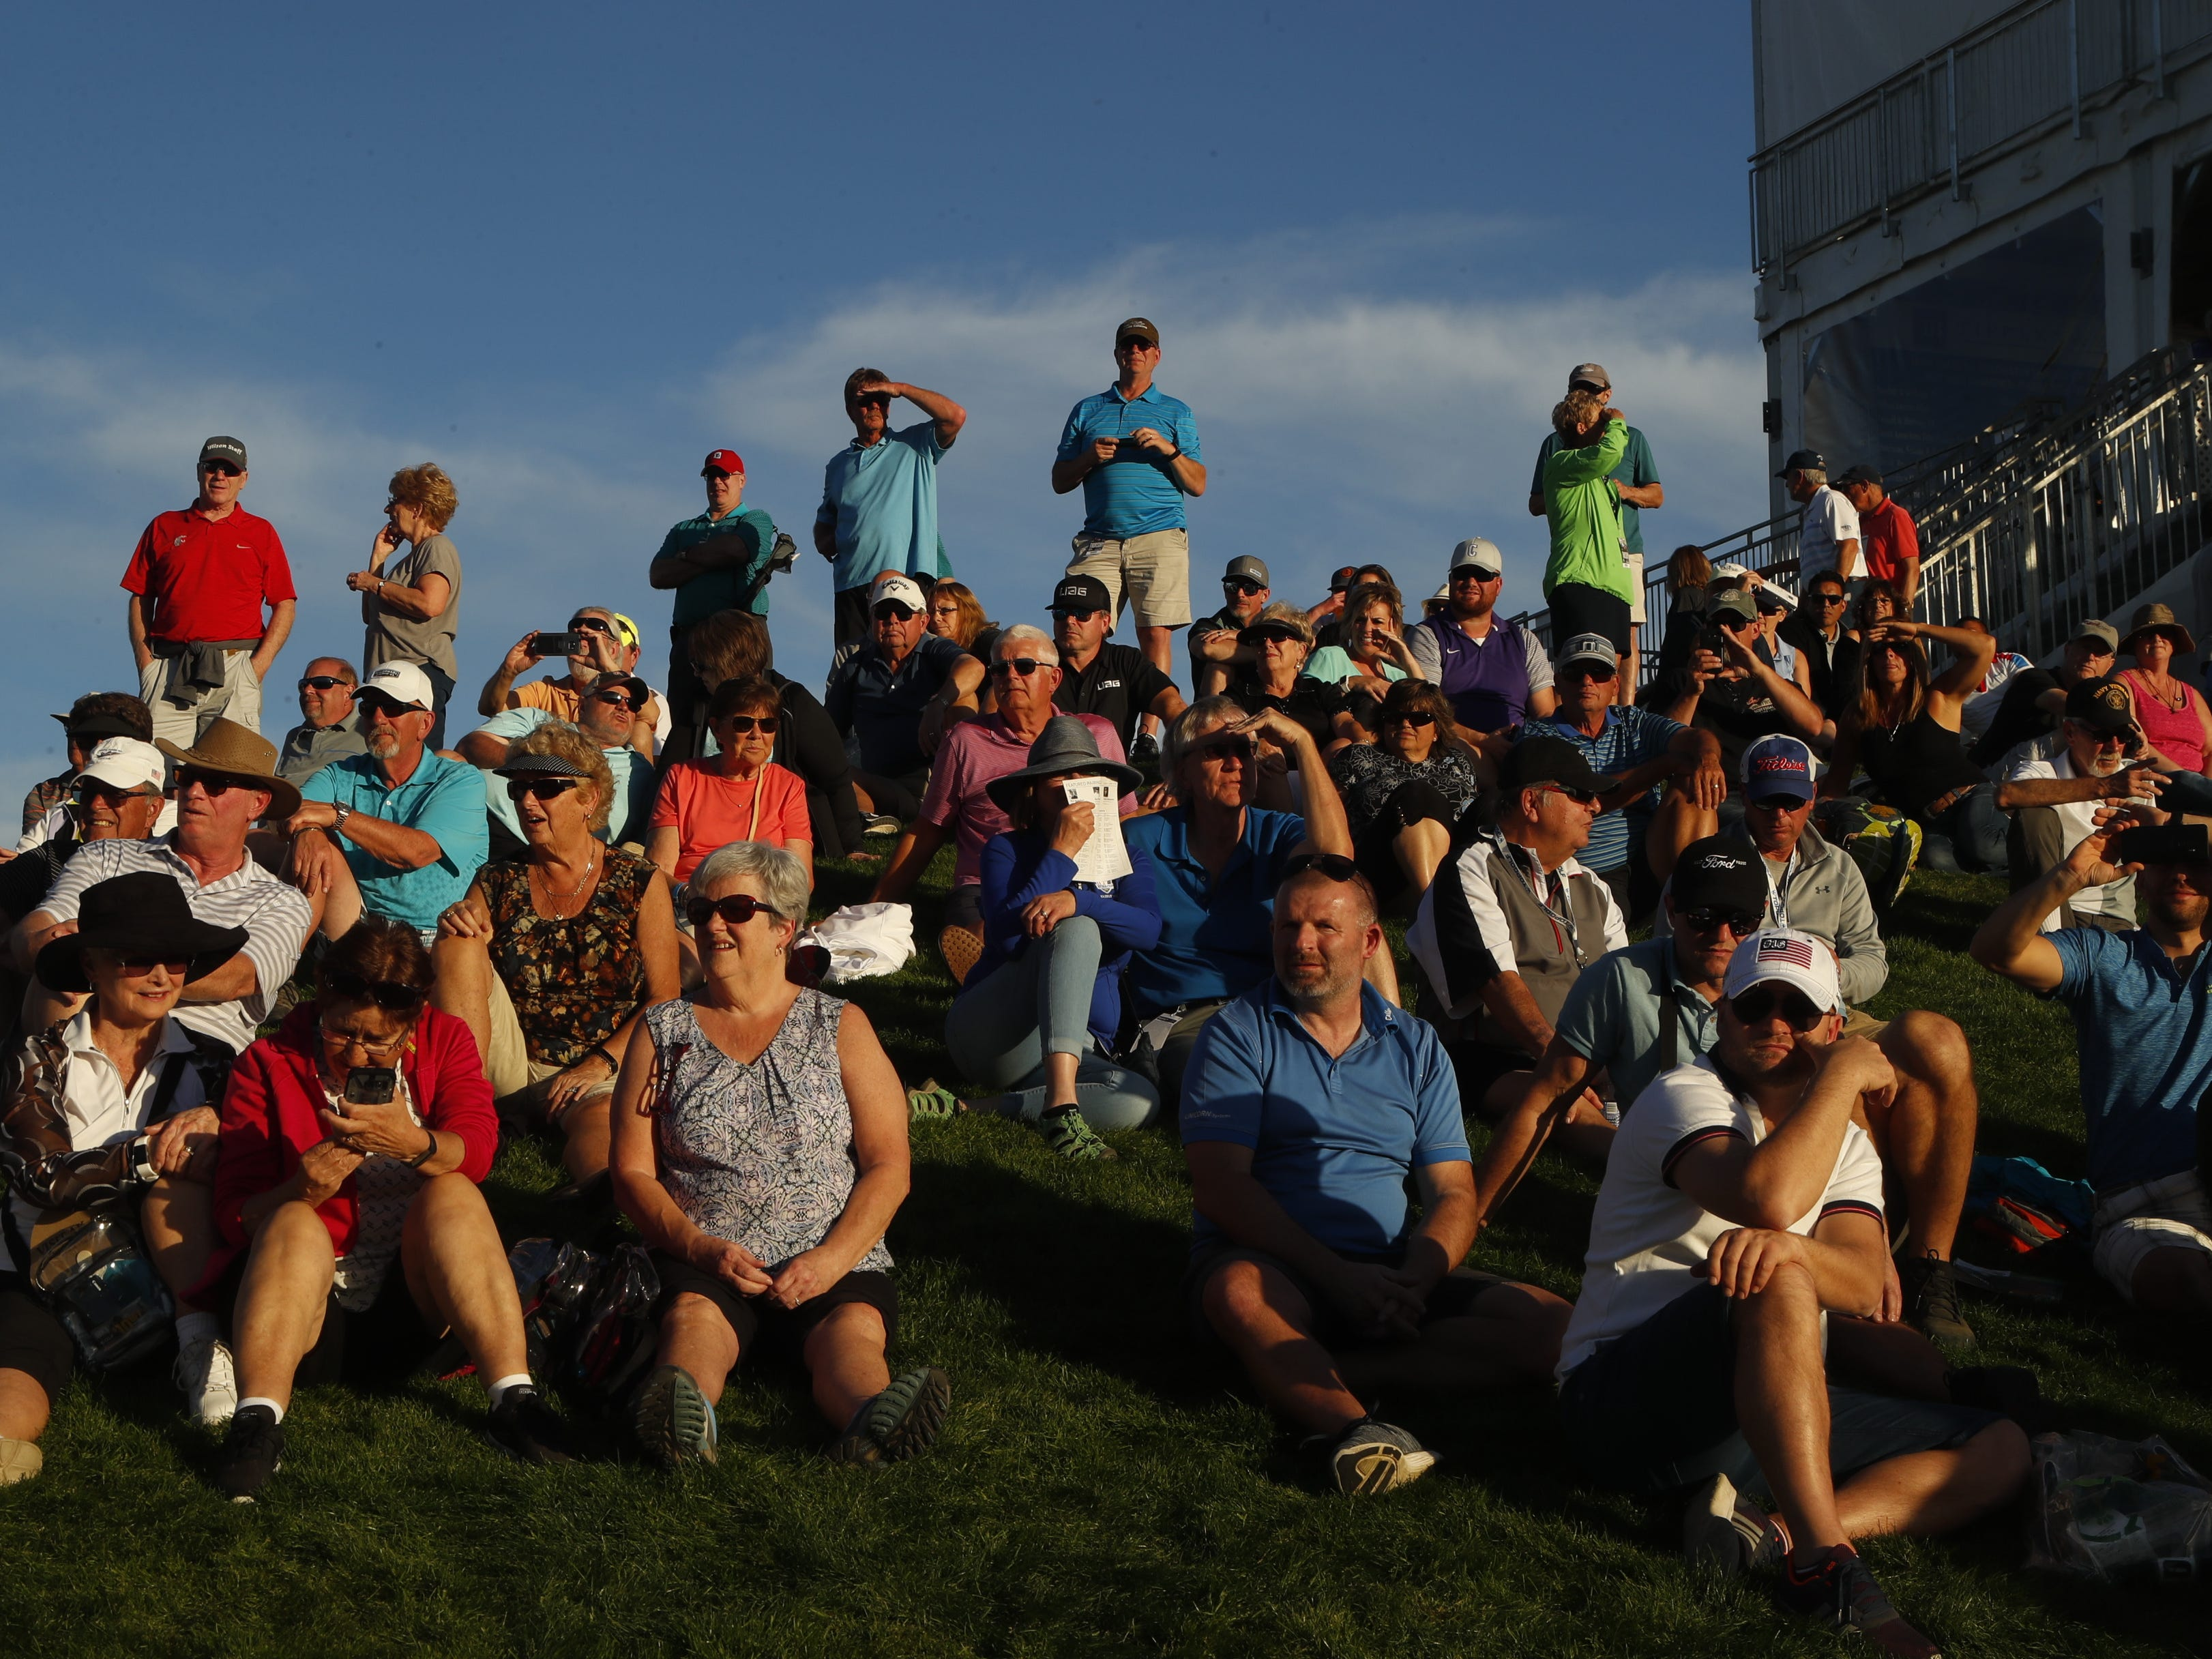 Fans watch players come up on the 18th green during first round of the Waste Management Phoenix Open at TPC Scottsdale in Scottsdale, Ariz. on January 31, 2019.